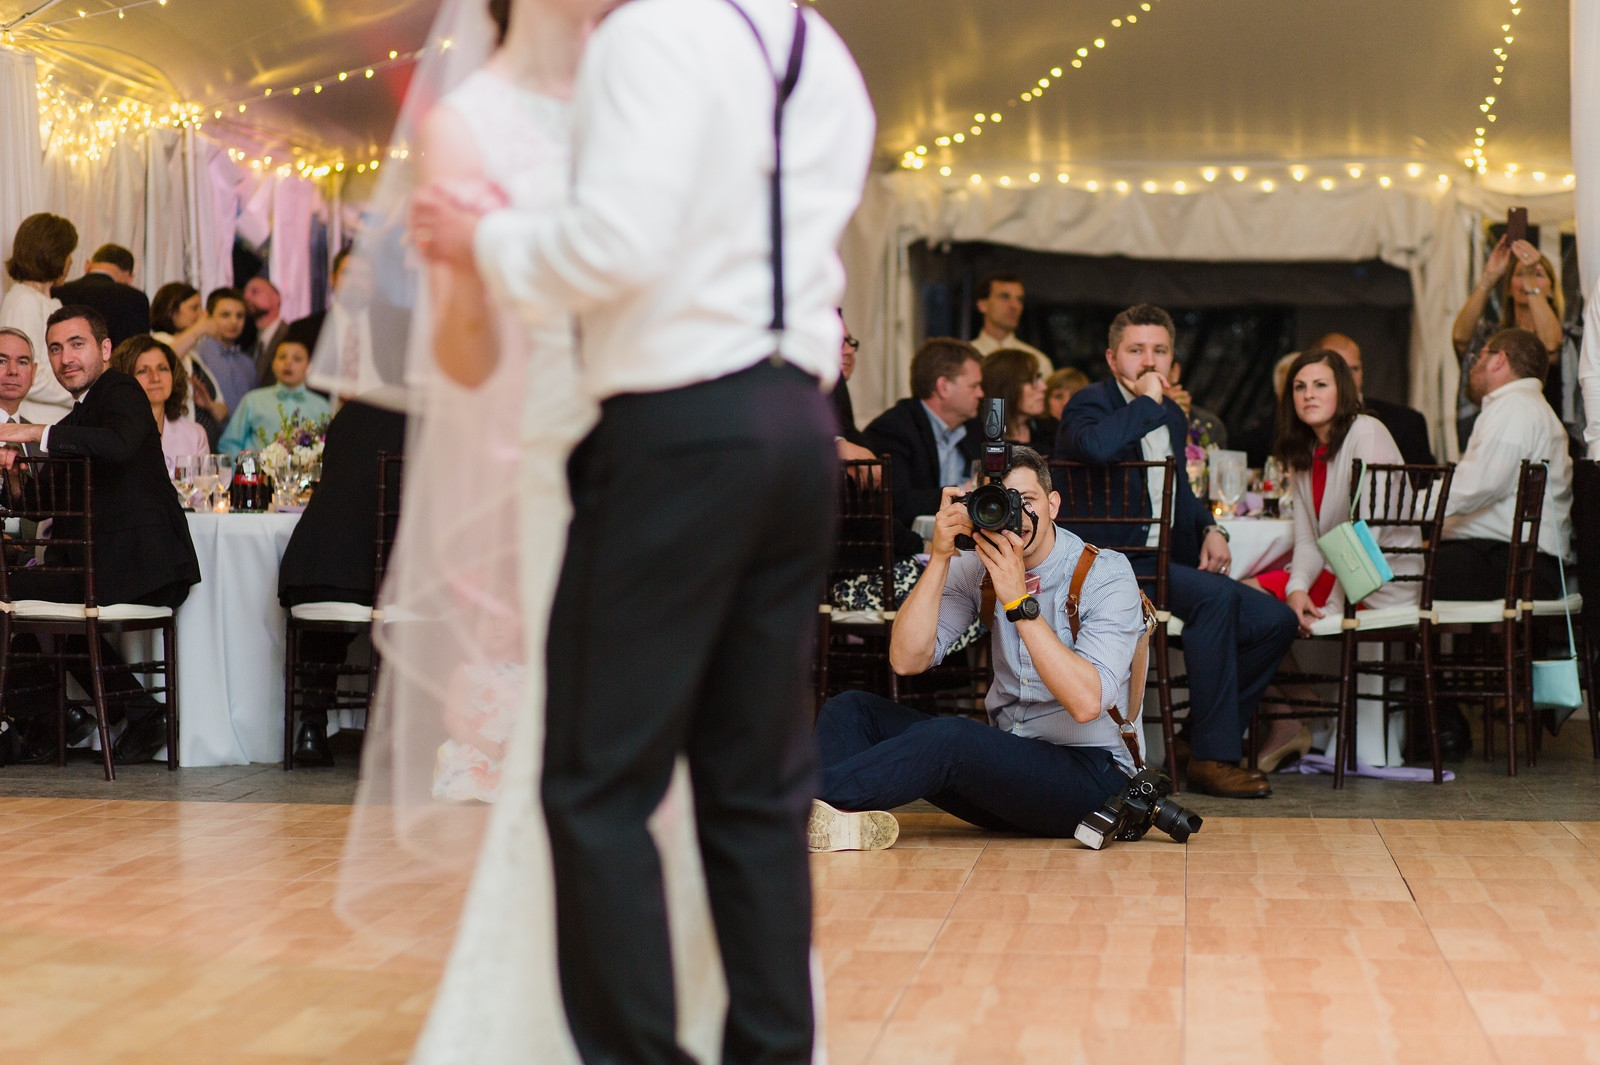 Documentary Wedding Photographer Stephen Grigoriou, in the field at work on the dance floor